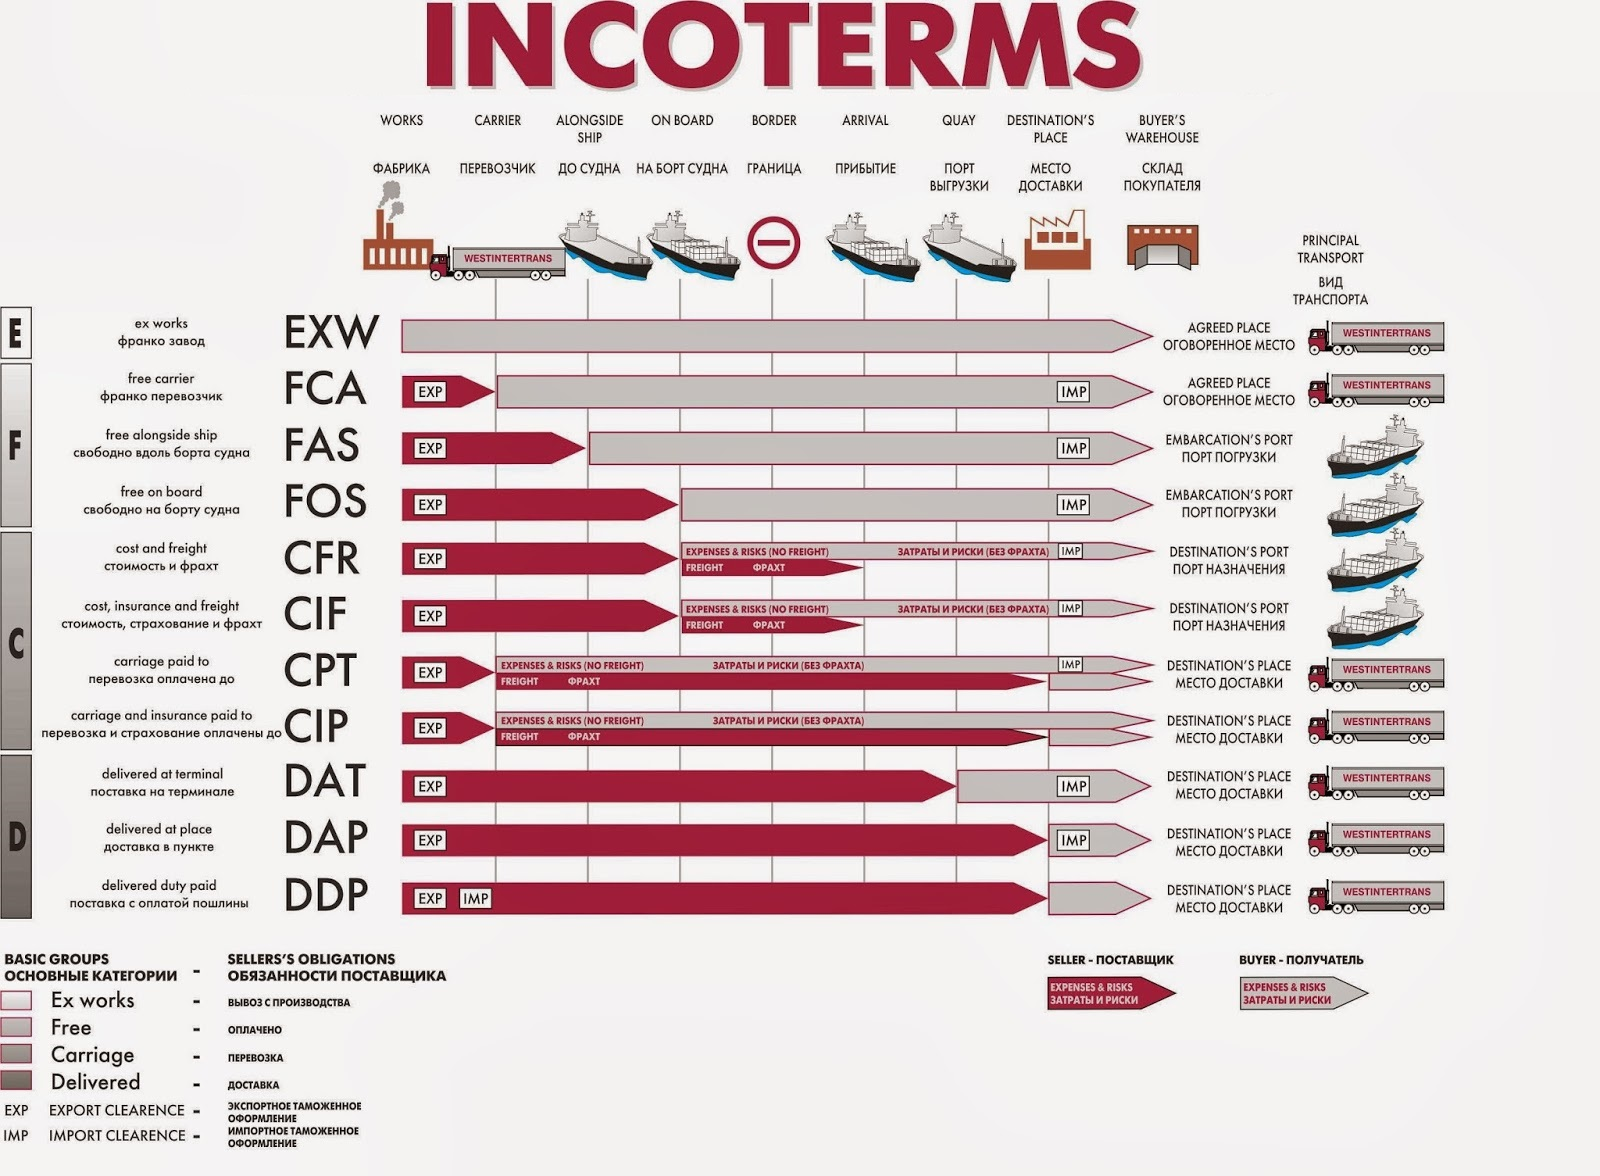 Incoterms Visual Explanation